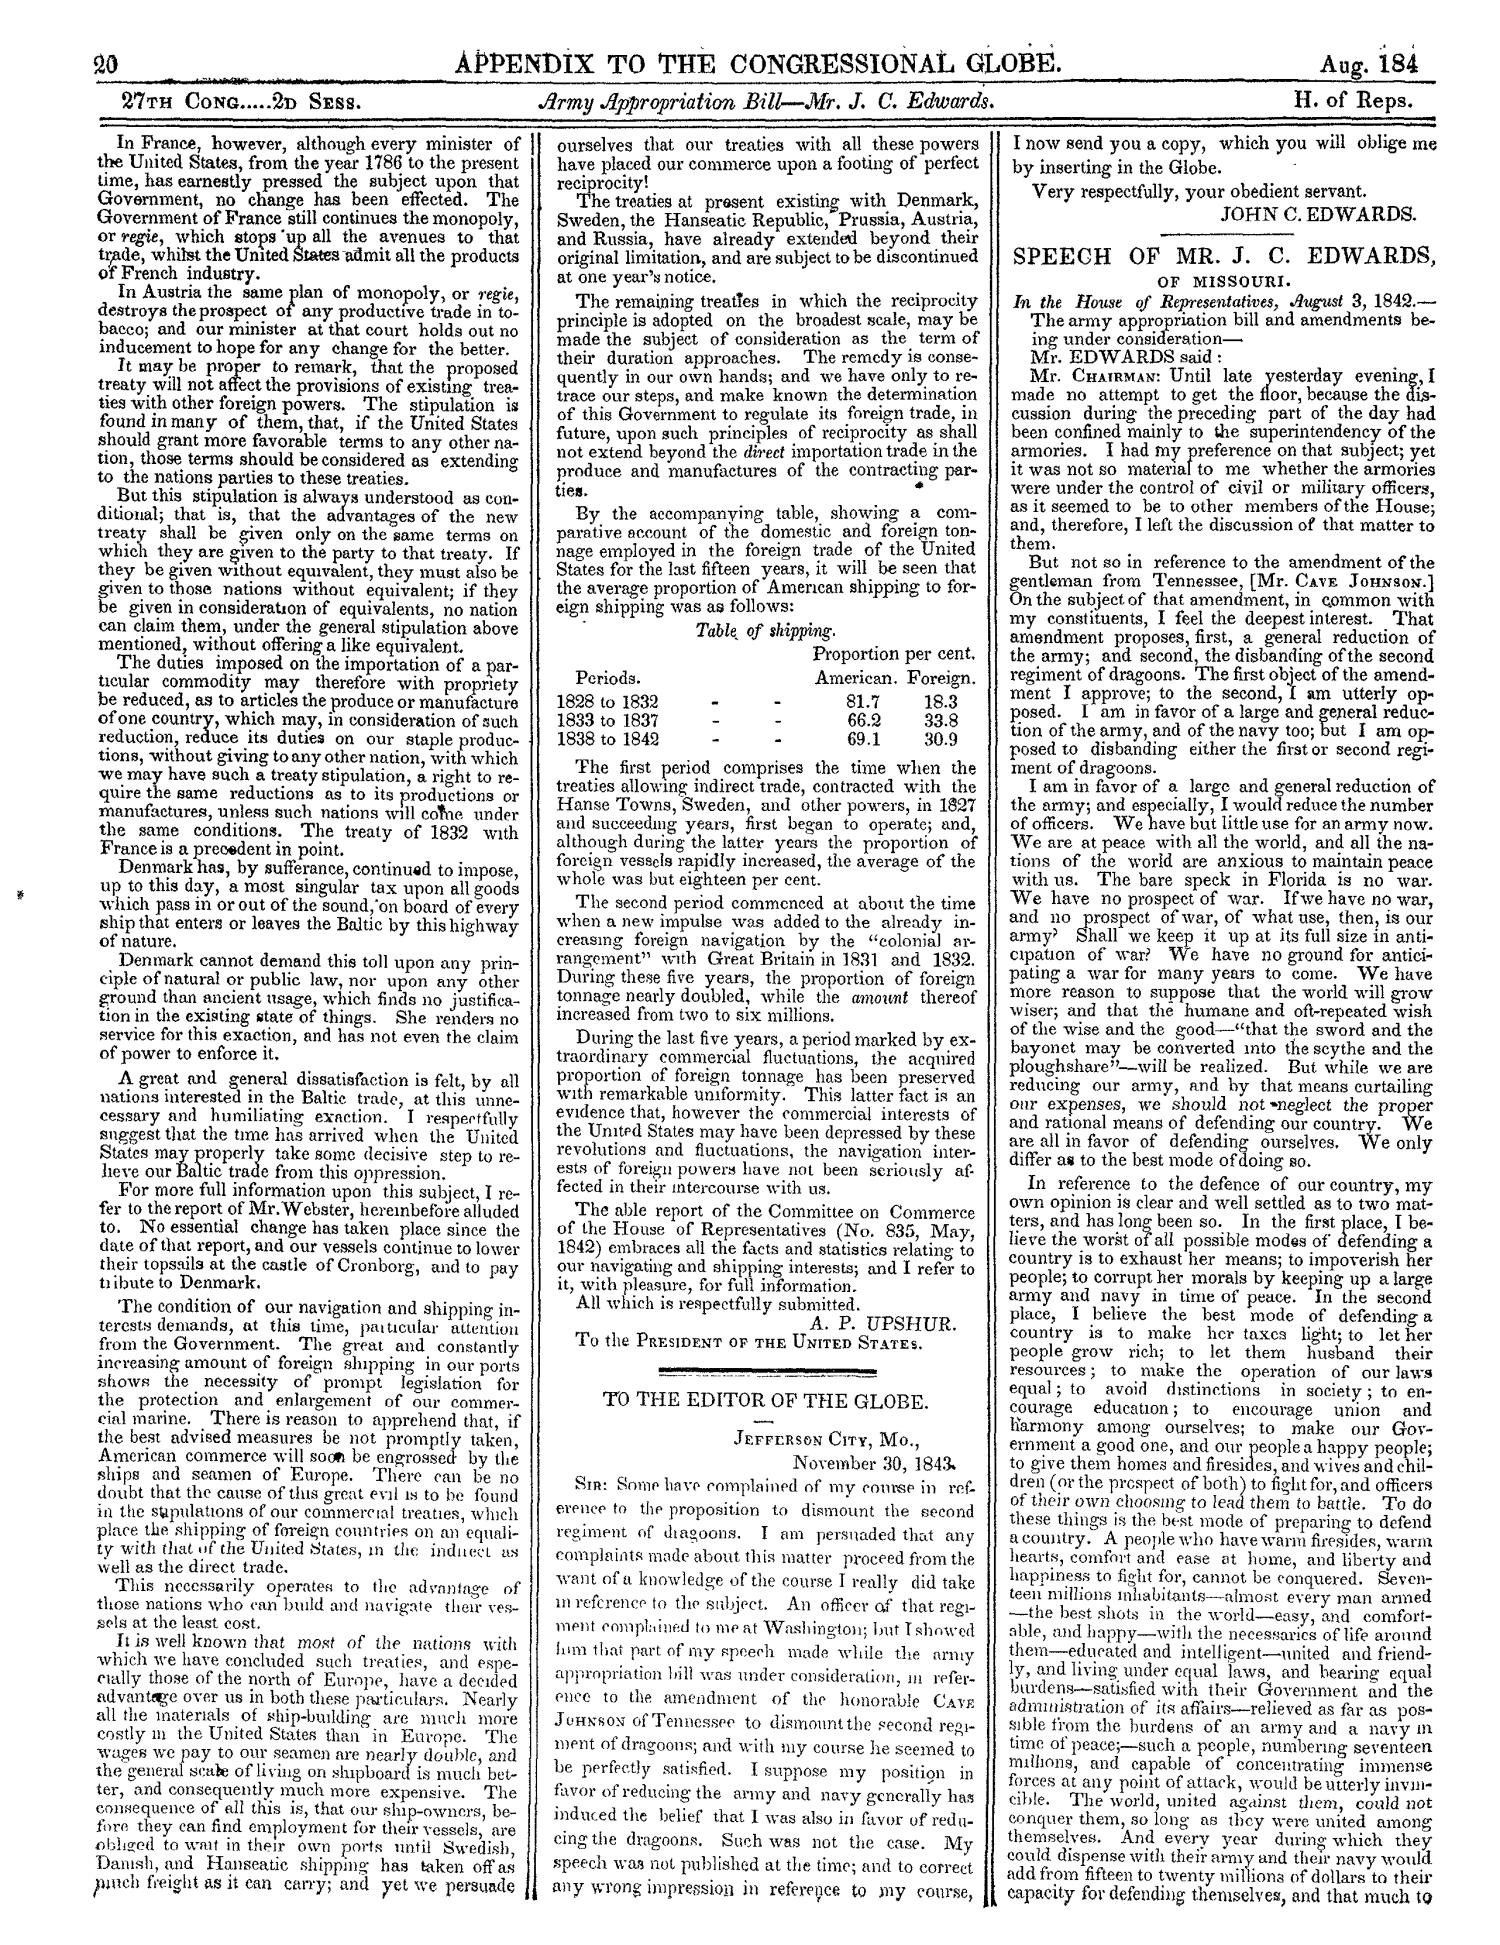 The Congressional Globe, Volume 13, Part 2: Twenty-Eighth Congress, First Session                                                                                                      20